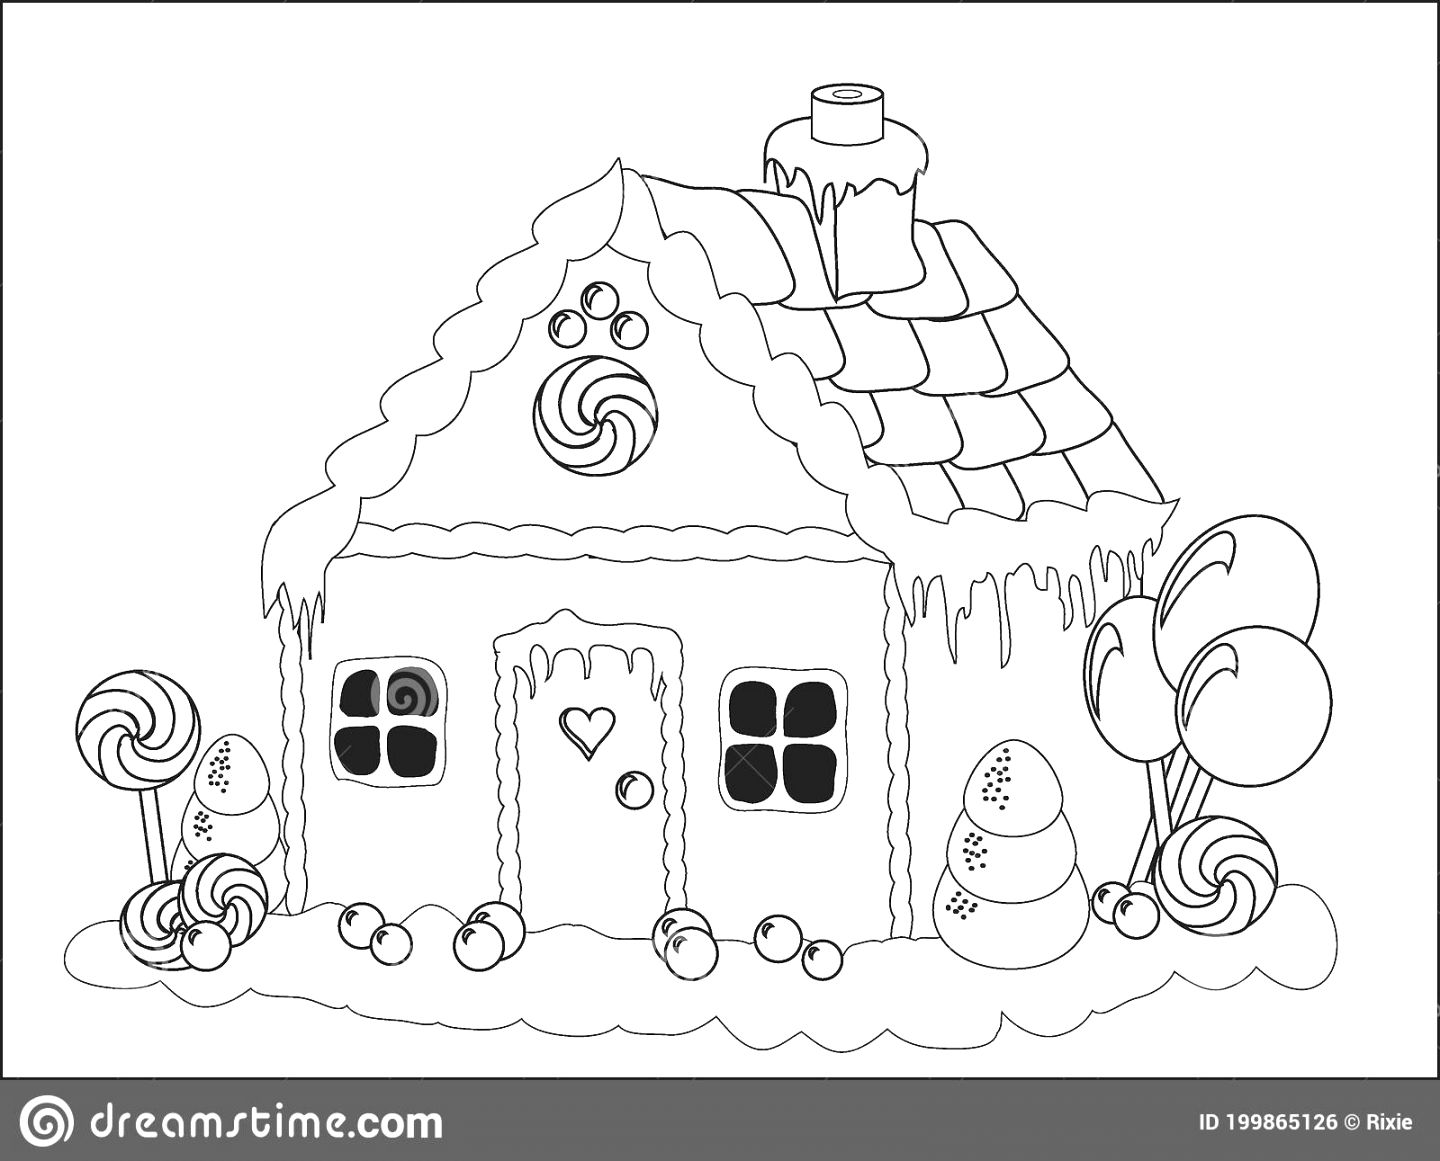 benefits of house colouring pictures download for free